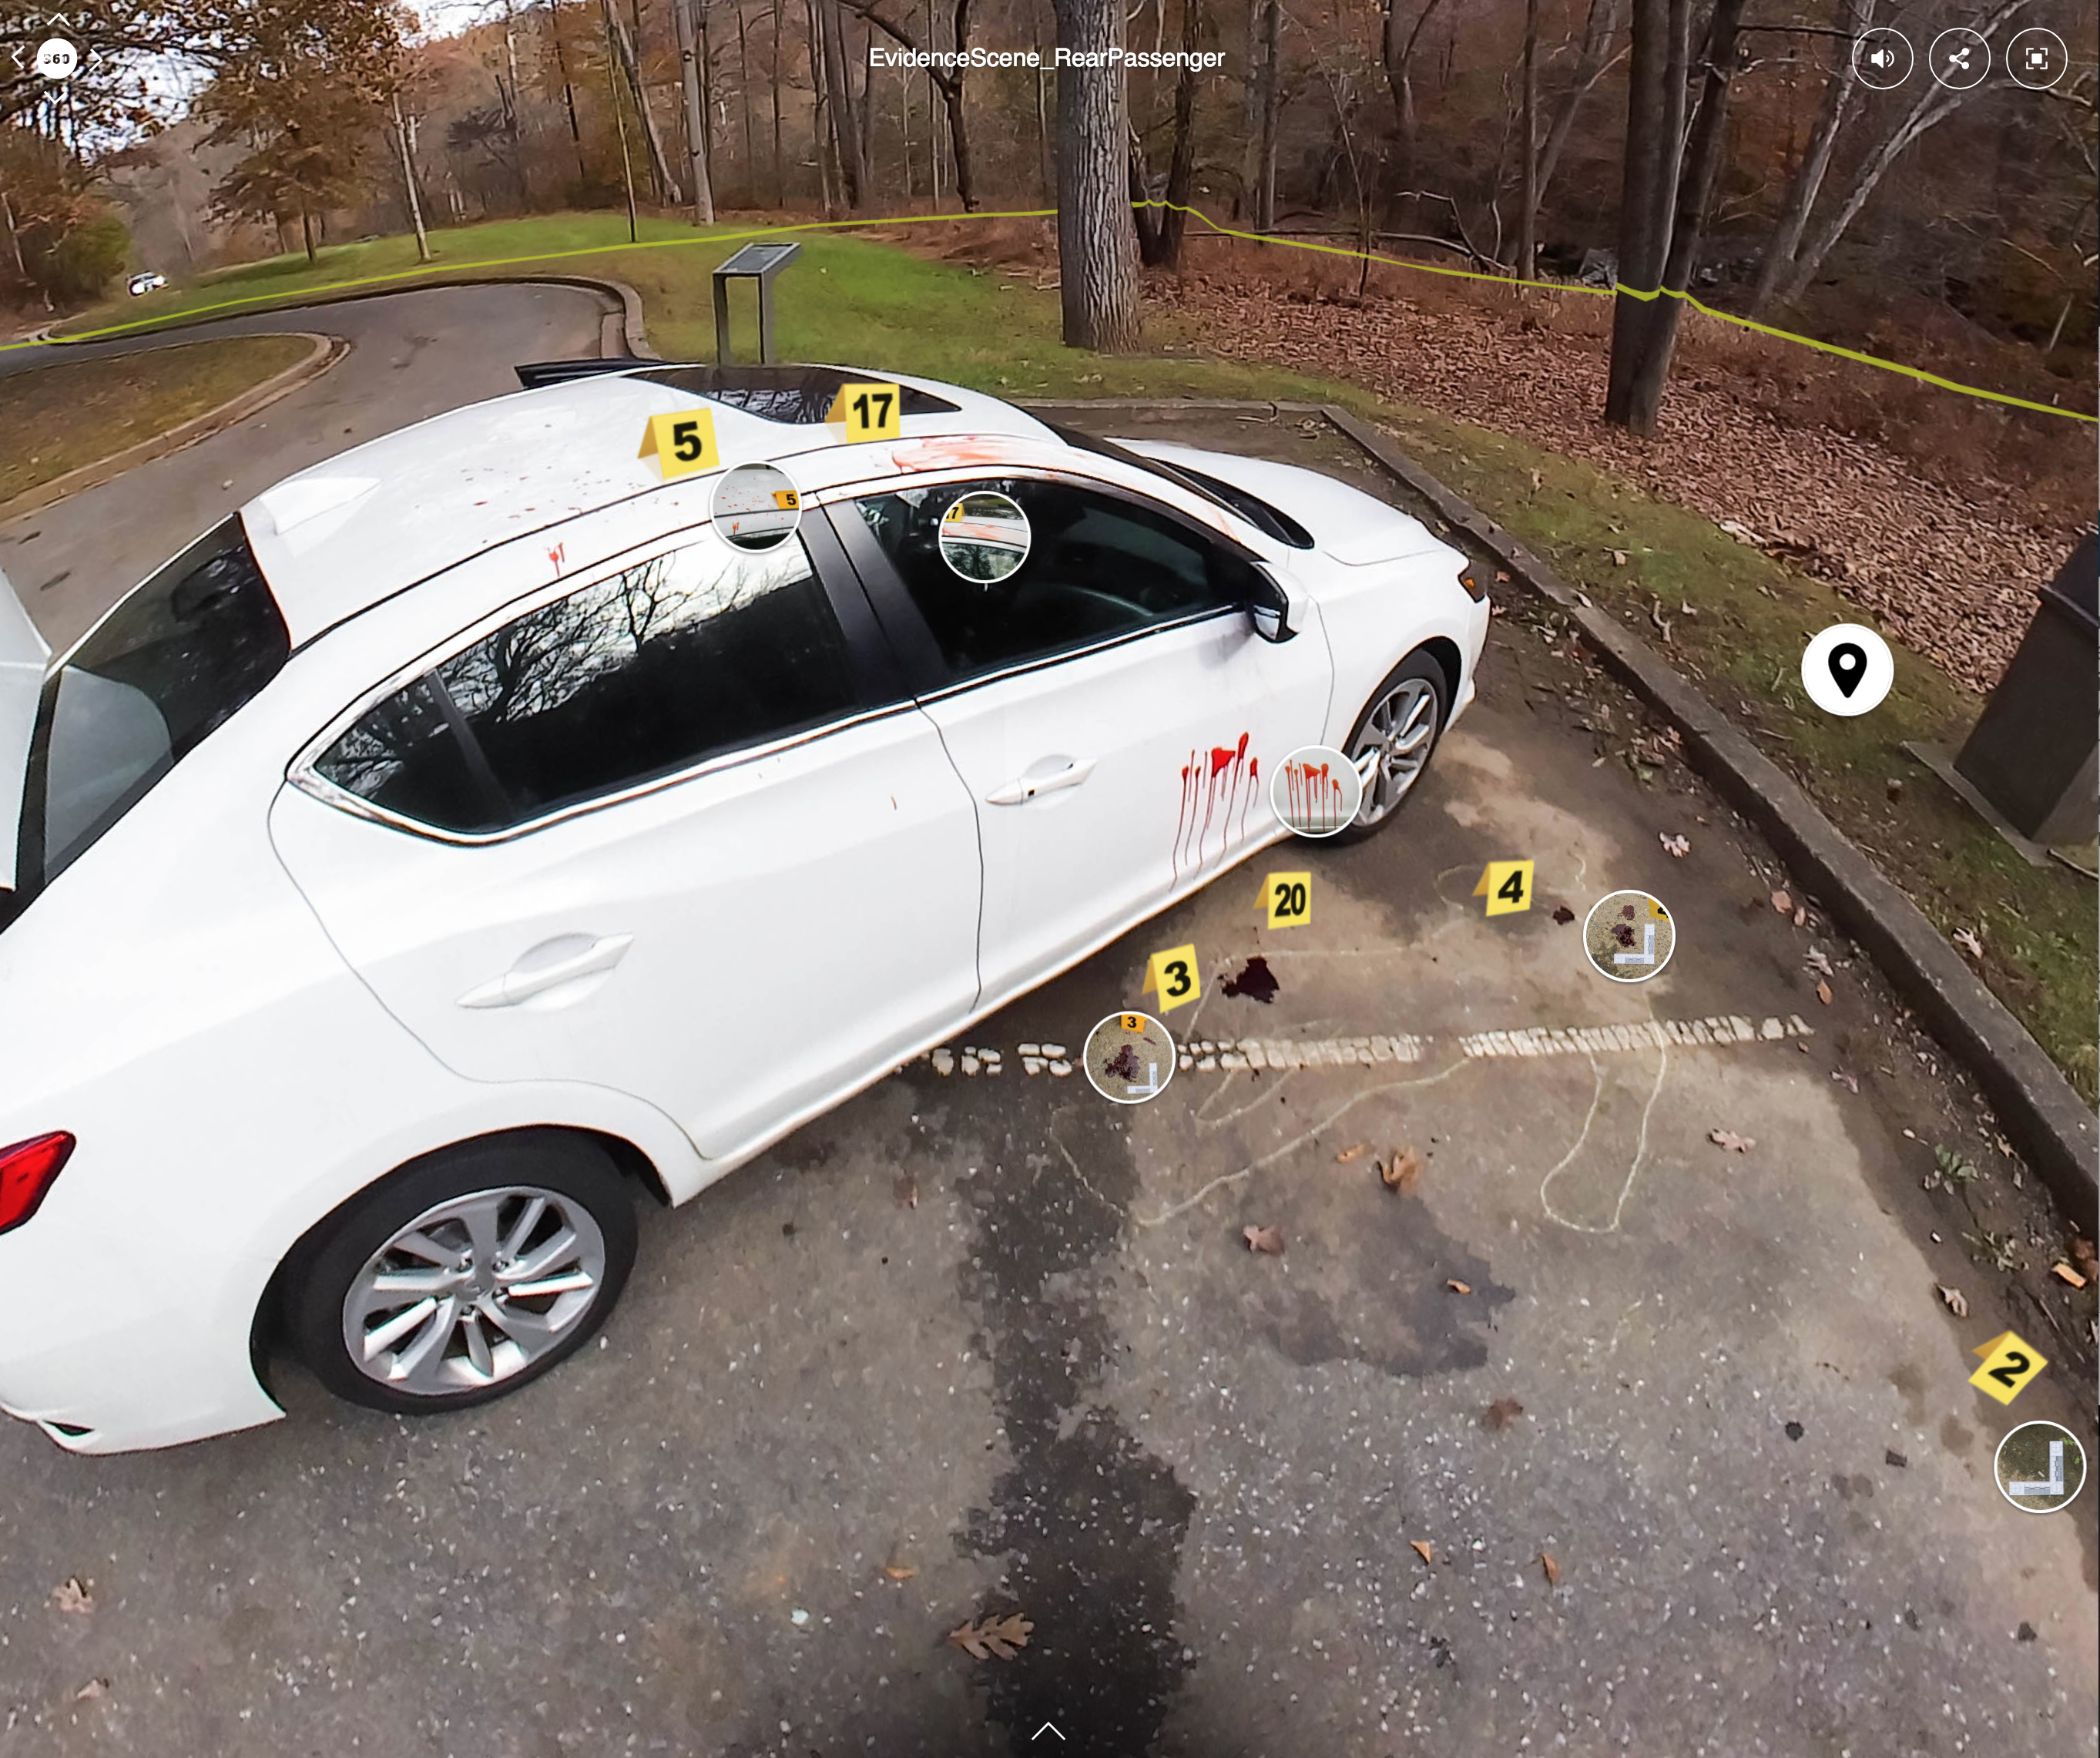 This screenshot shows a screen from the virtual reality simulation. A white car takes up most of the frame, with yellow evidence markers indicating areas where students should zoom in for further inspection.